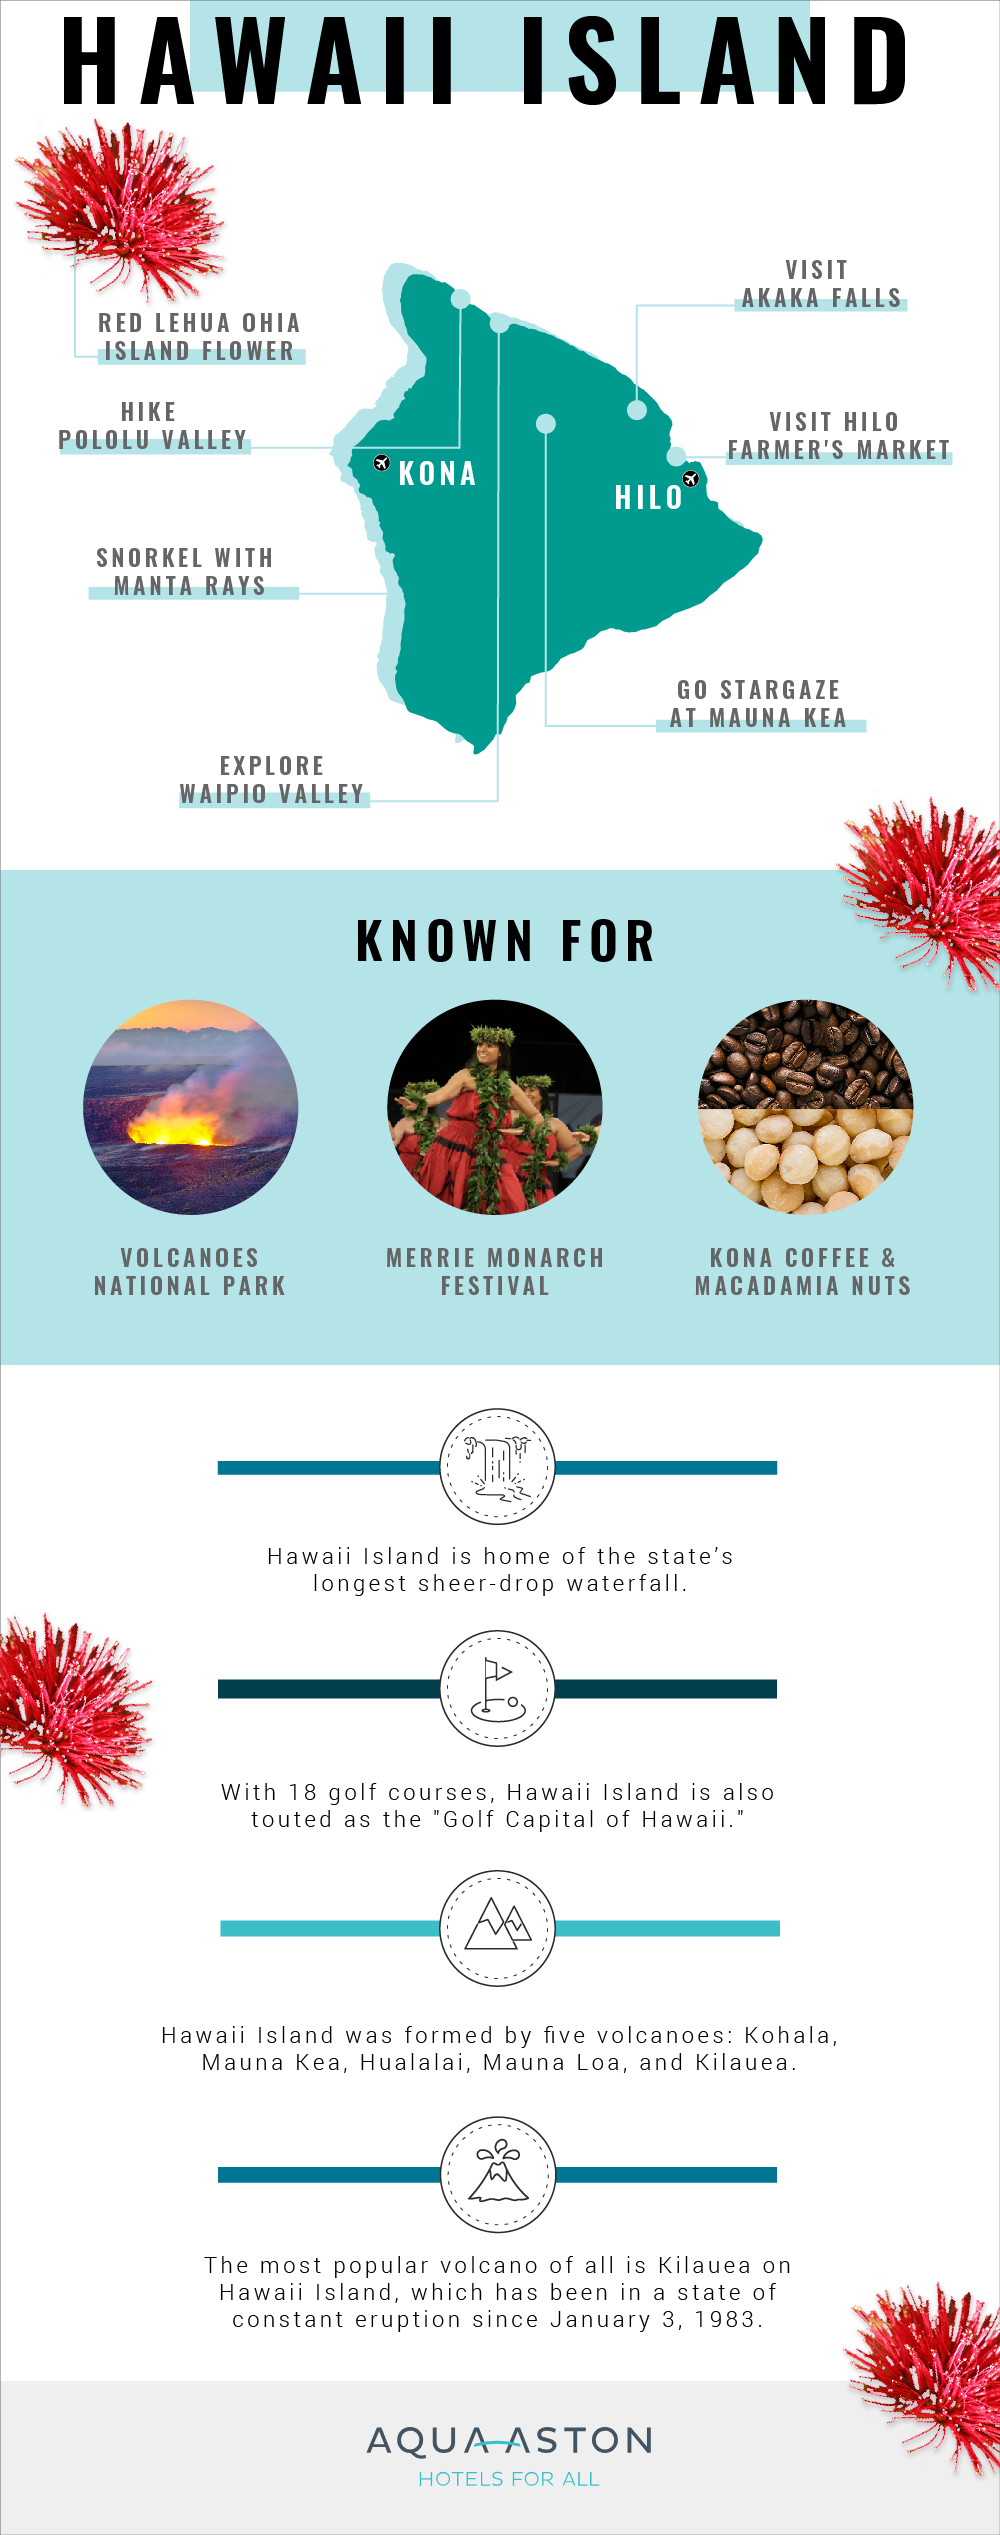 Hawaii-Infographic-Hawaii-Island.jpg (AA-Hawaii-ALL-ISLANDS-Infographic_V05)